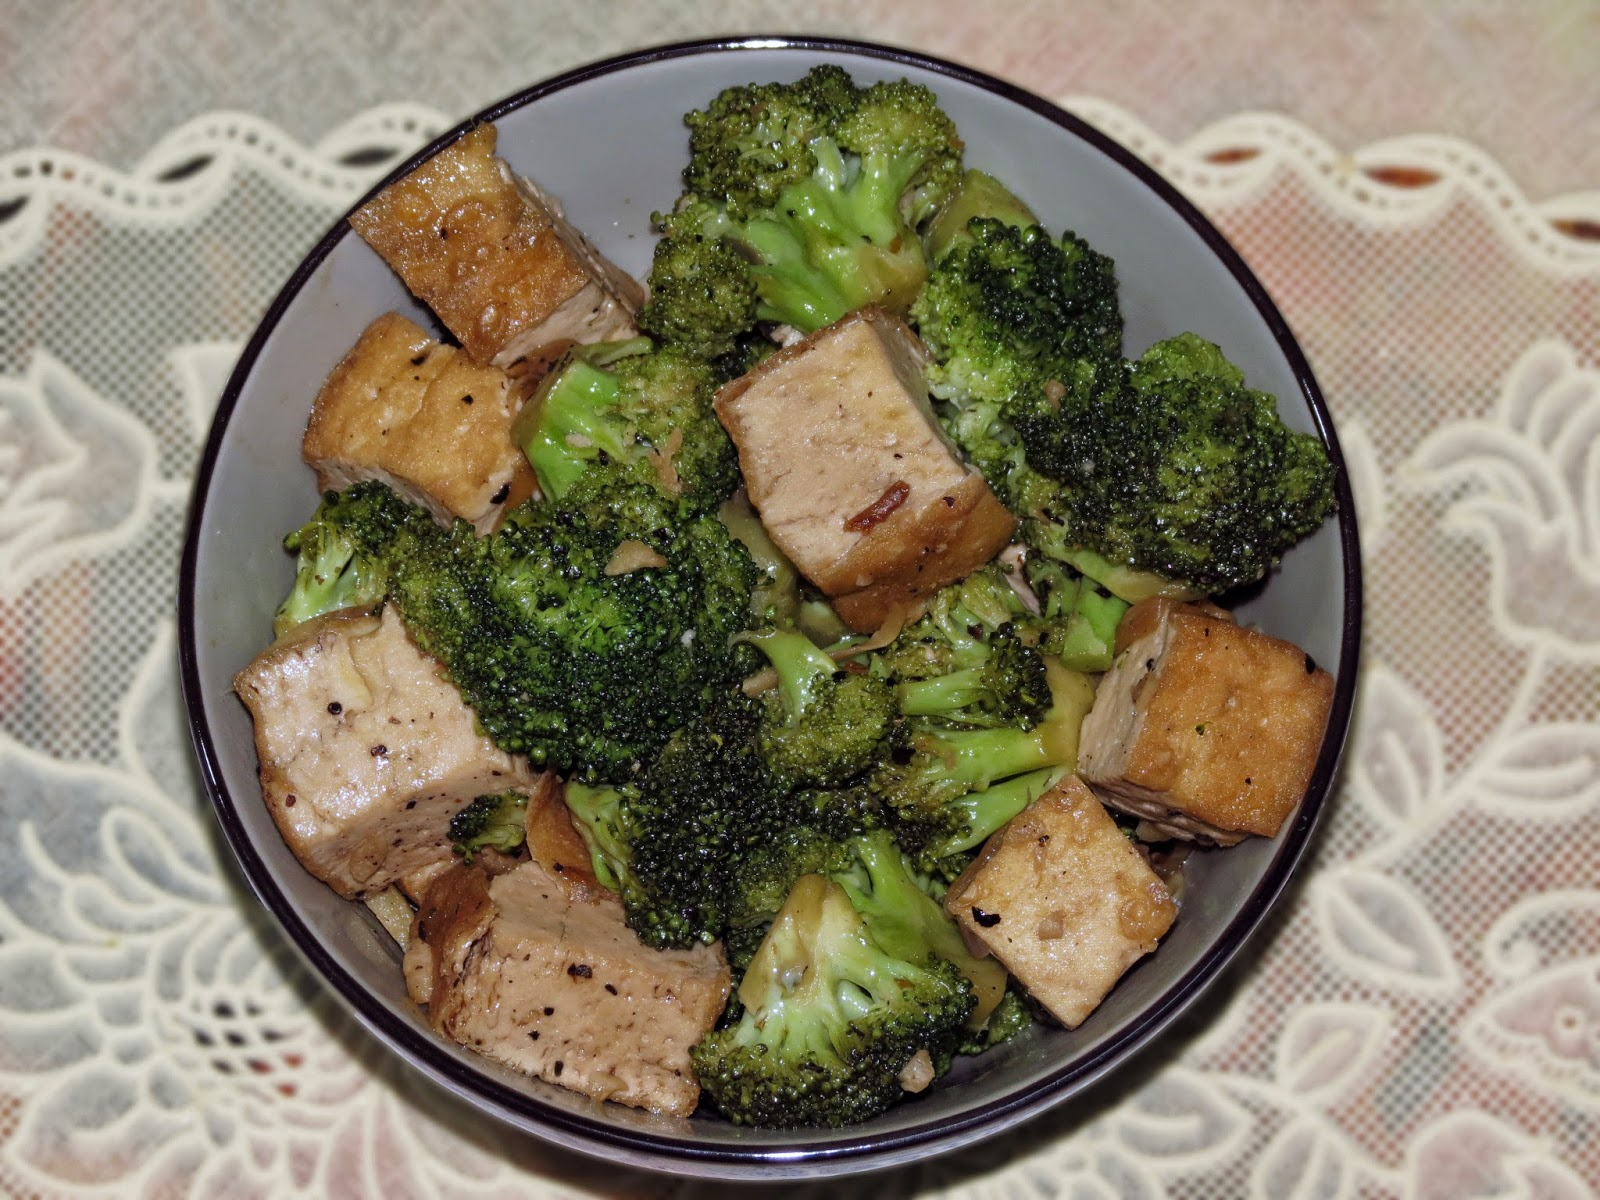 This dish is good for those who don't want to eat meat and want to be healthy.